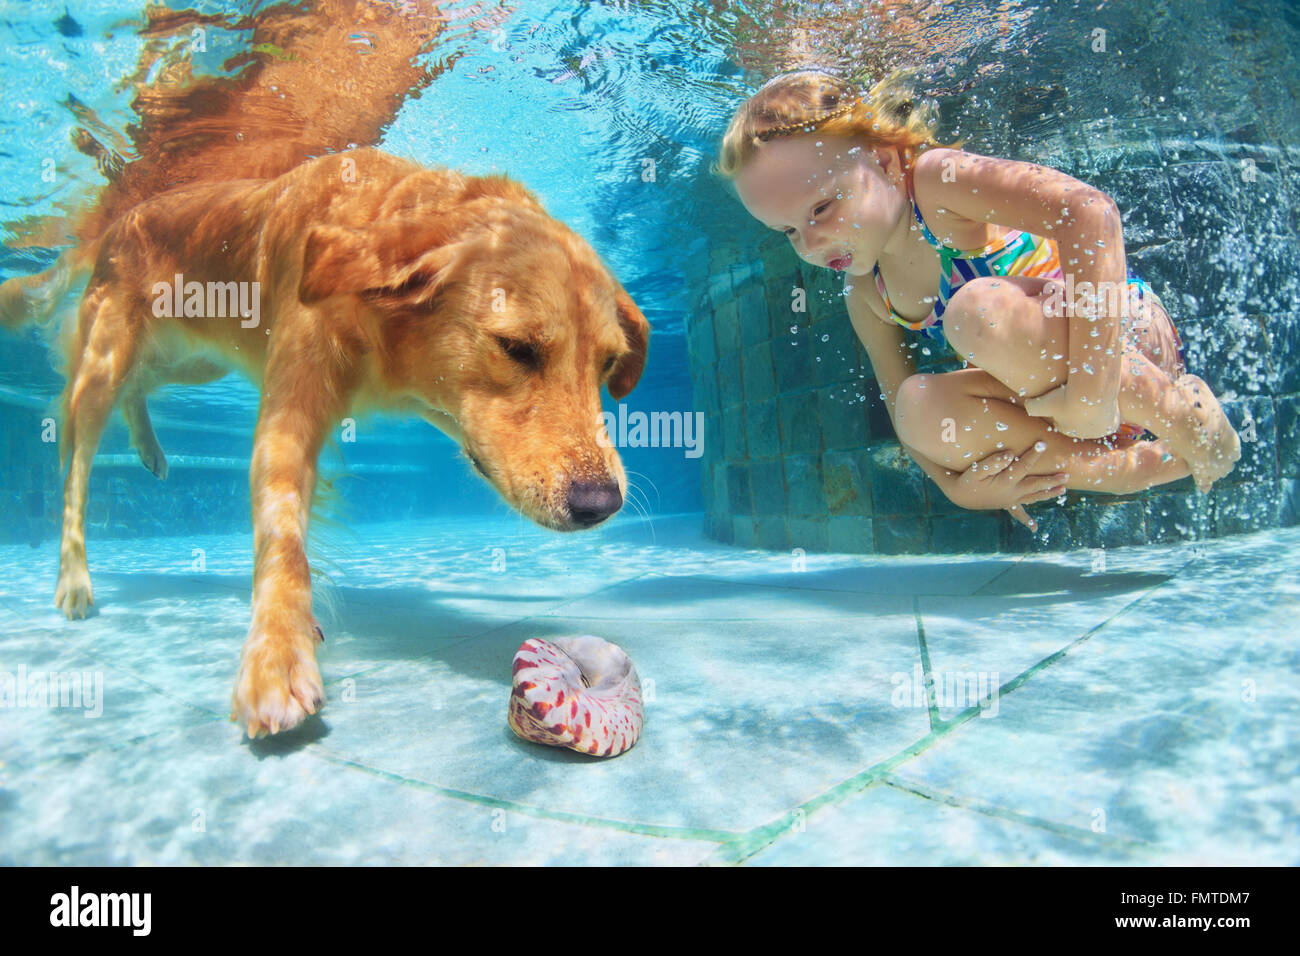 How To Train Your Dog To Swim In The Pool